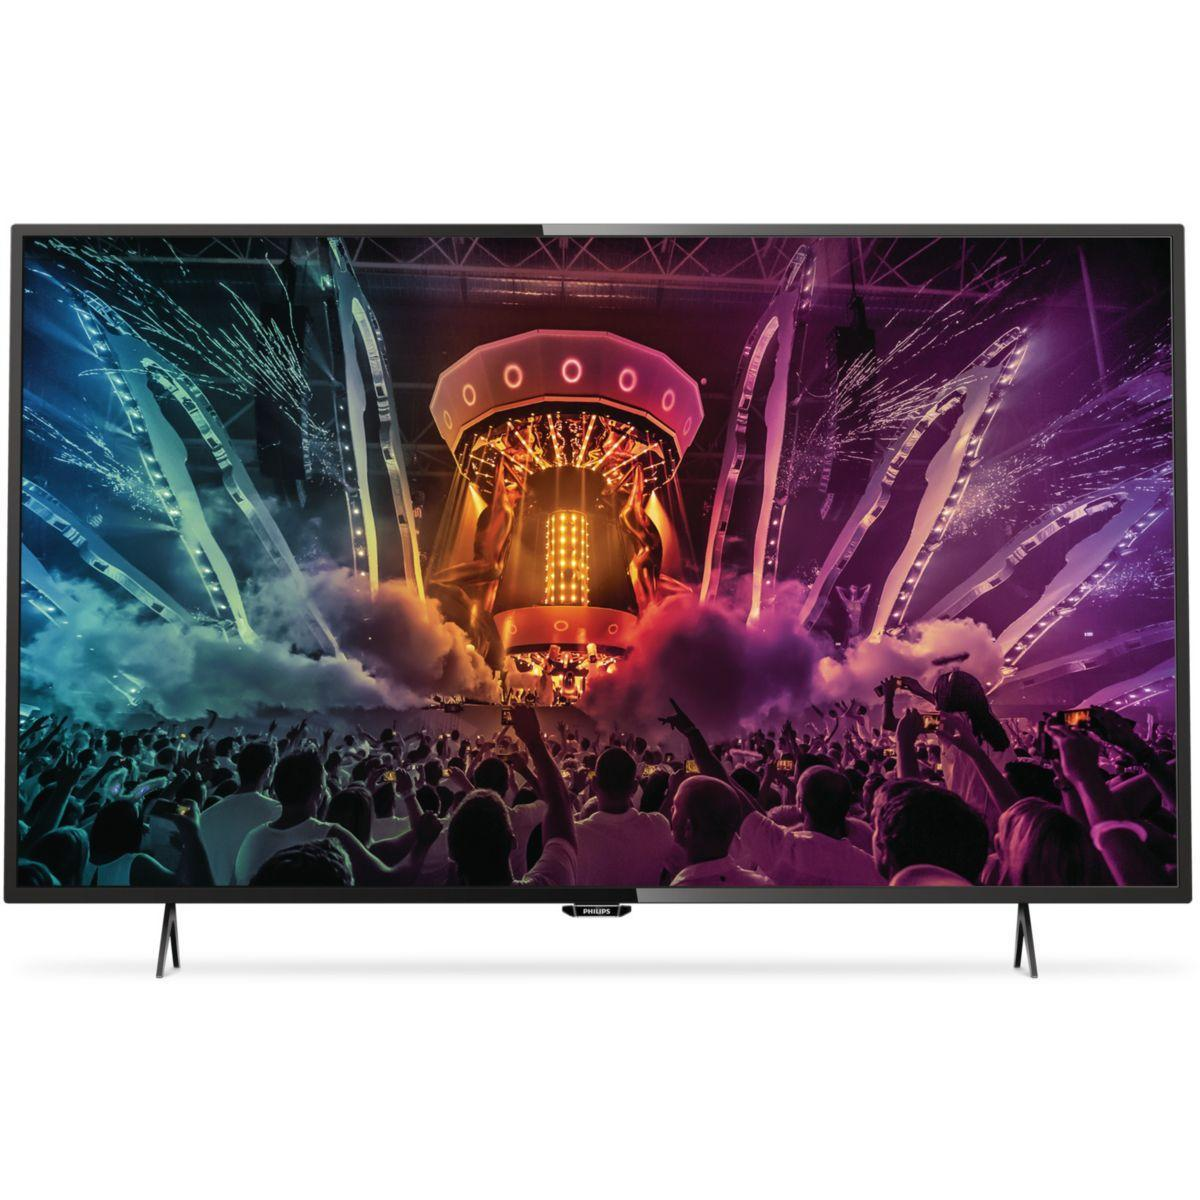 Pack promo tv philips 43puh6101 4k 800 ppi smart tv + sonos play3 noir x2 + sonos play1 noir x2 (photo)